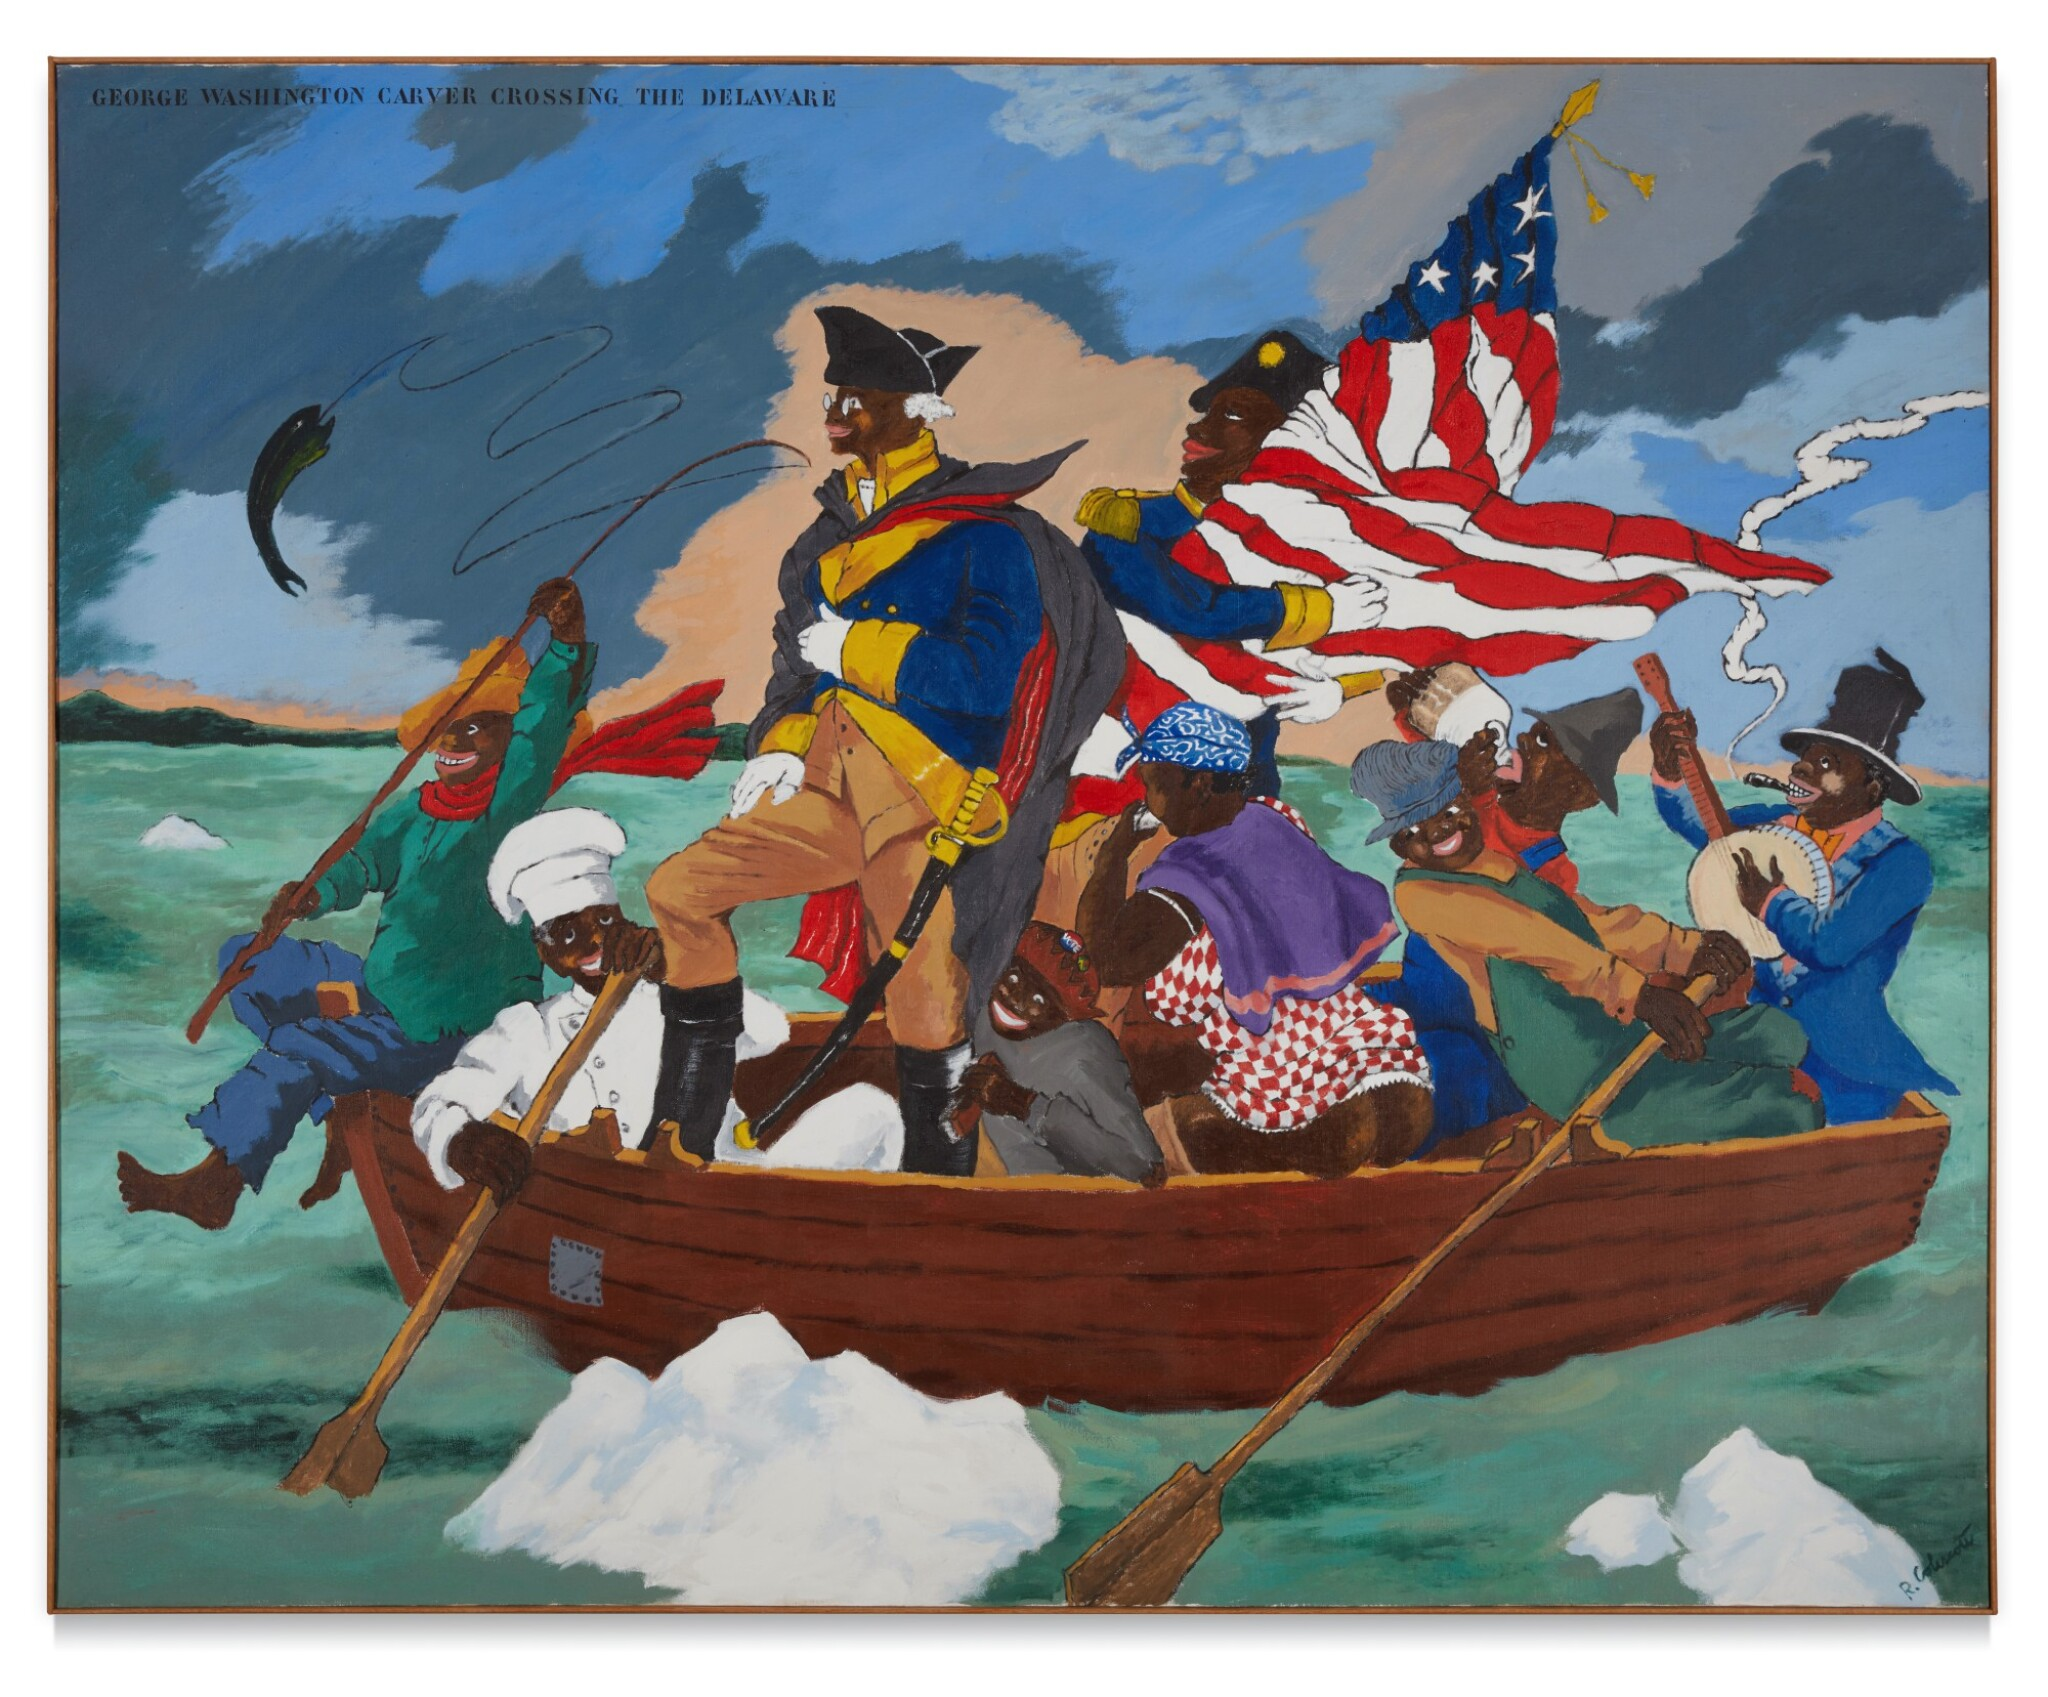 View full screen - View 1 of Lot 108. George Washington Carver Crossing the Delaware: Page from an American History Textbook.